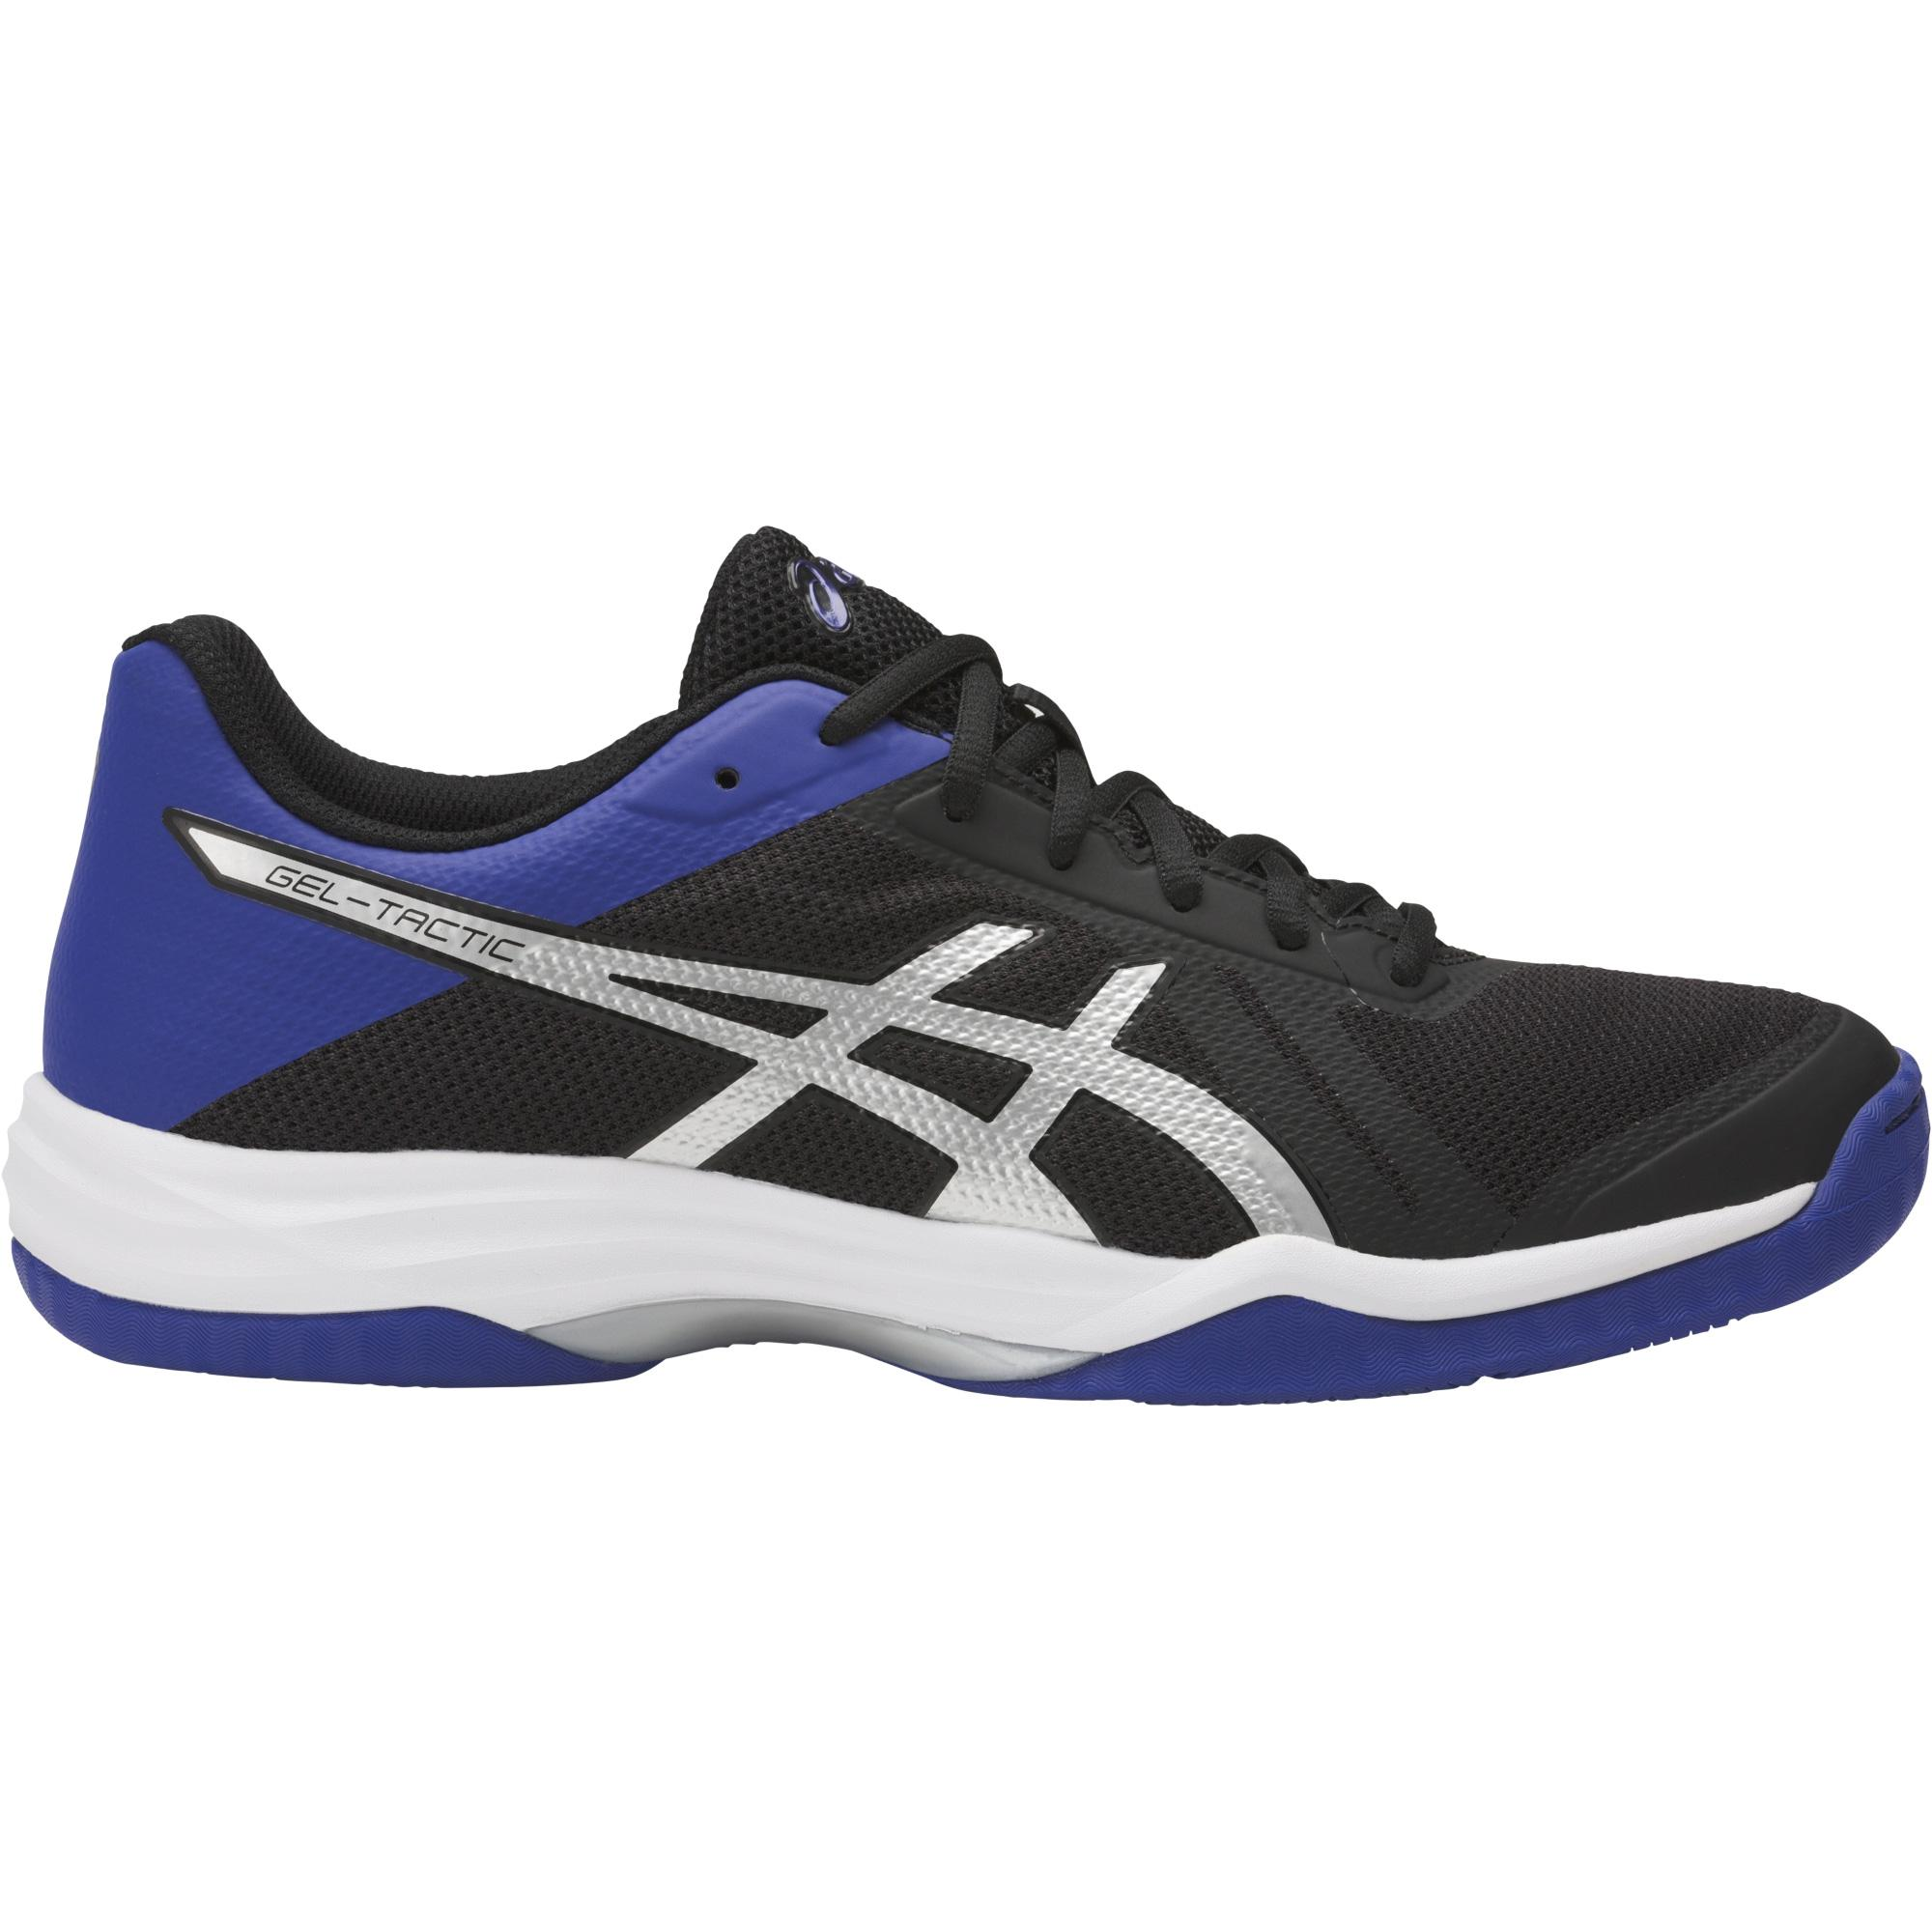 Asics Mens Tennis Shoes Uk